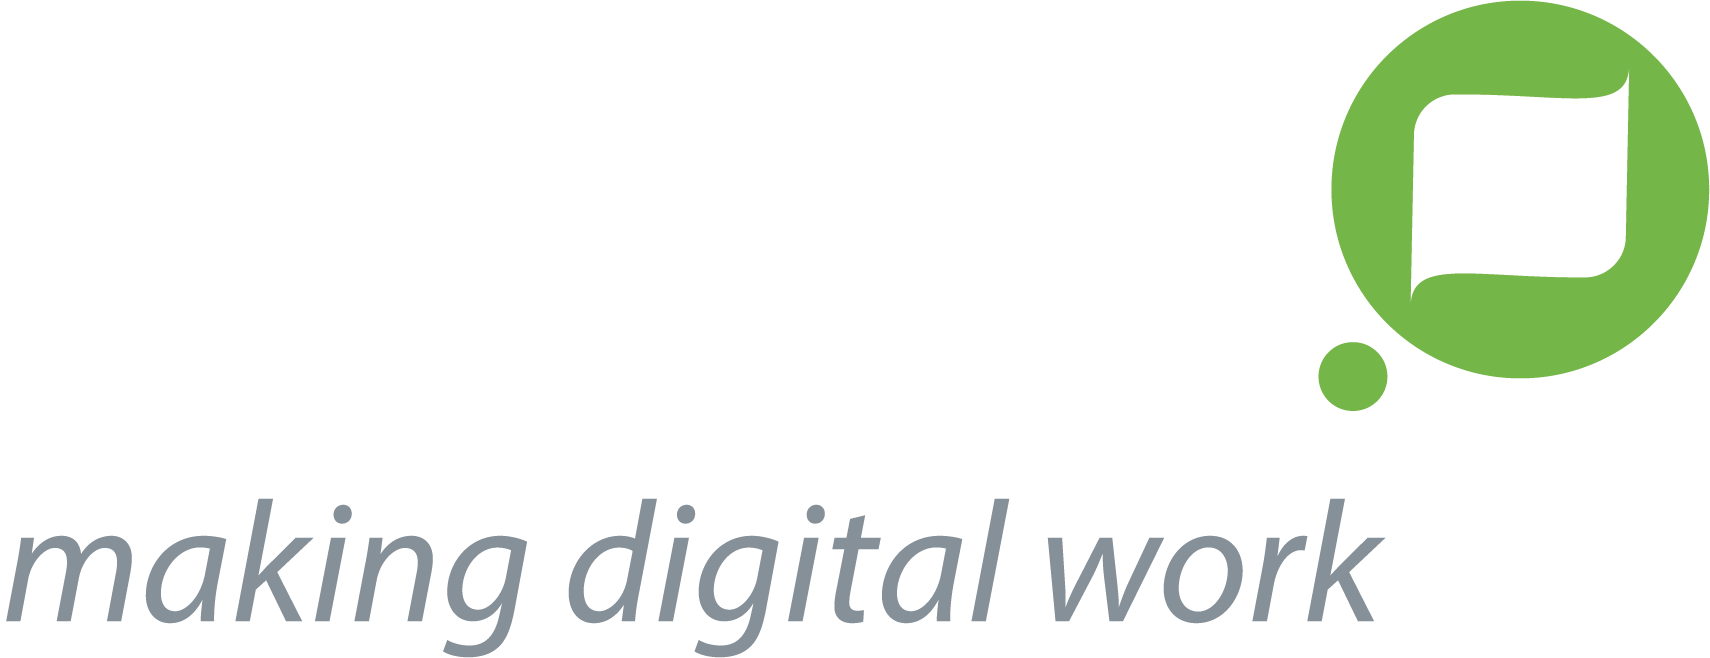 EzeScan Logo 2018 HIGH RES.png